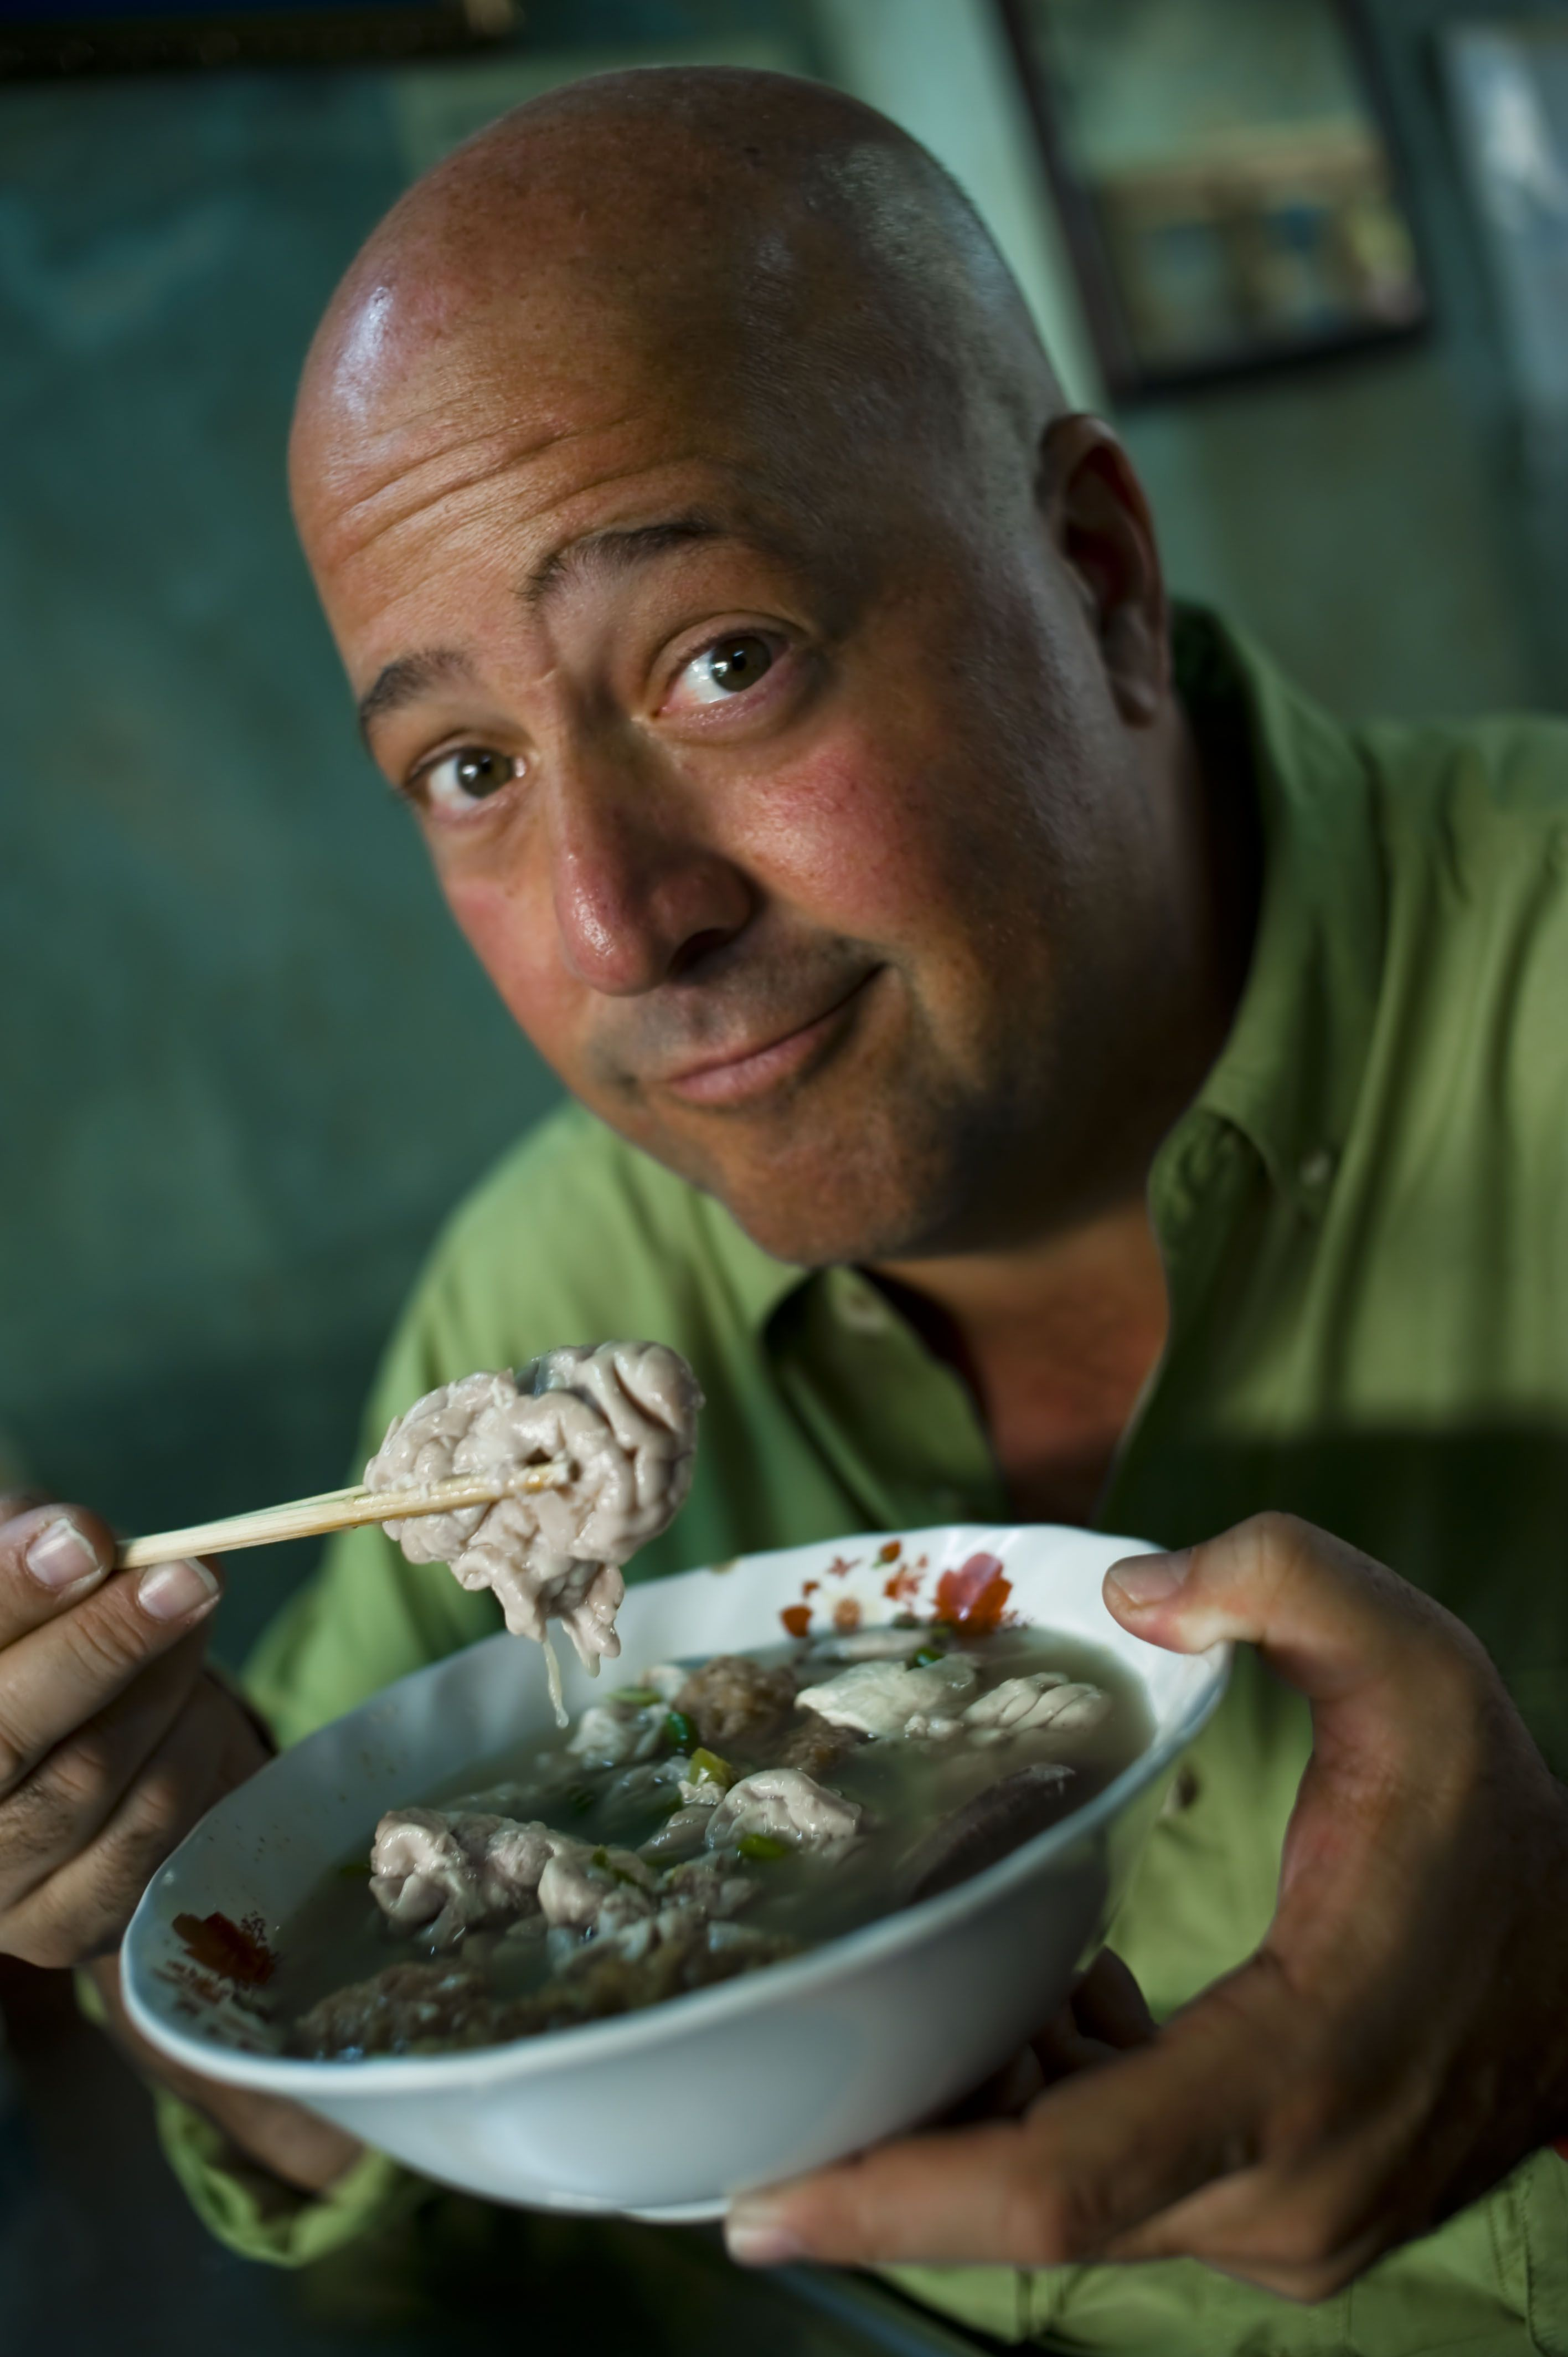 """""""Outside the kitchen my life was spiraling downward. I told myself I was in control, that I wasn't really addicted at all. I used heroin to come down from coke, alcohol to moderate the pills. I had it all figured out."""" -Andrew Zimmern  http://huff.to/1aKw6Fm Andrew Zimmern of Bizarre Foods  - The Travel Channel"""